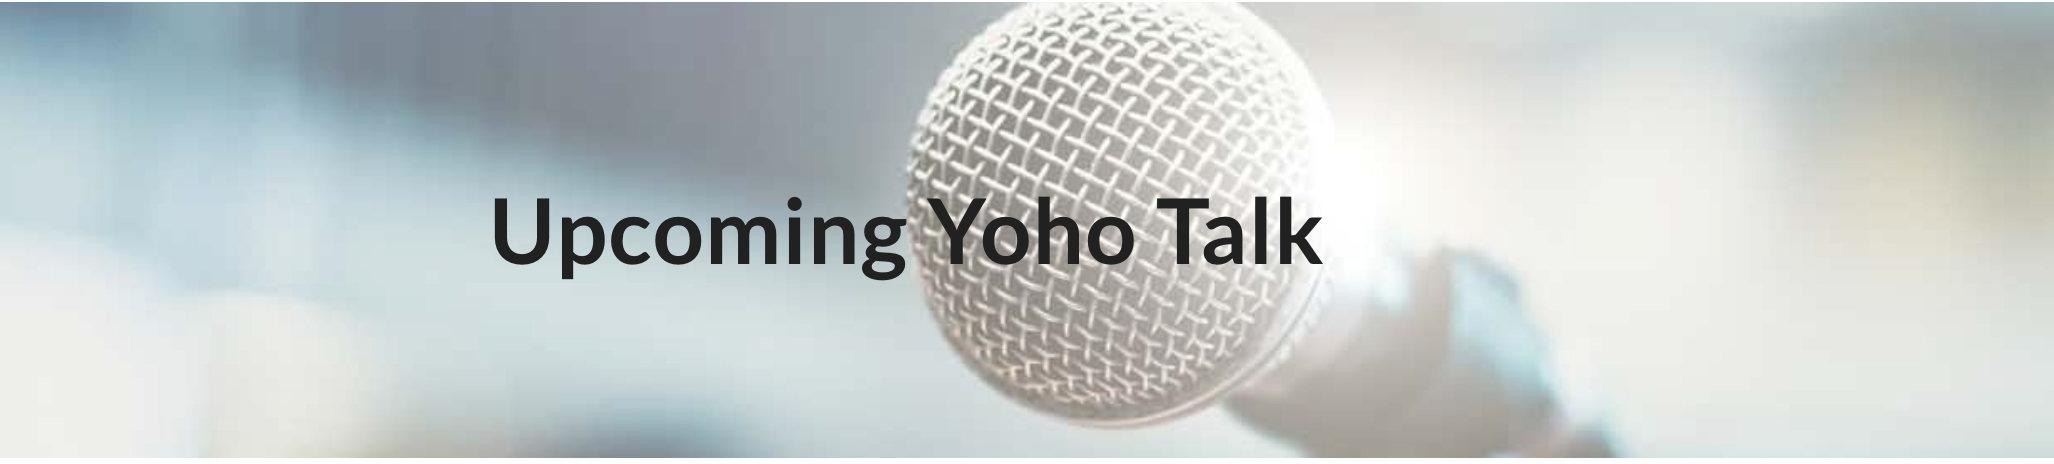 Yoho talk with Sara Zeff Geber